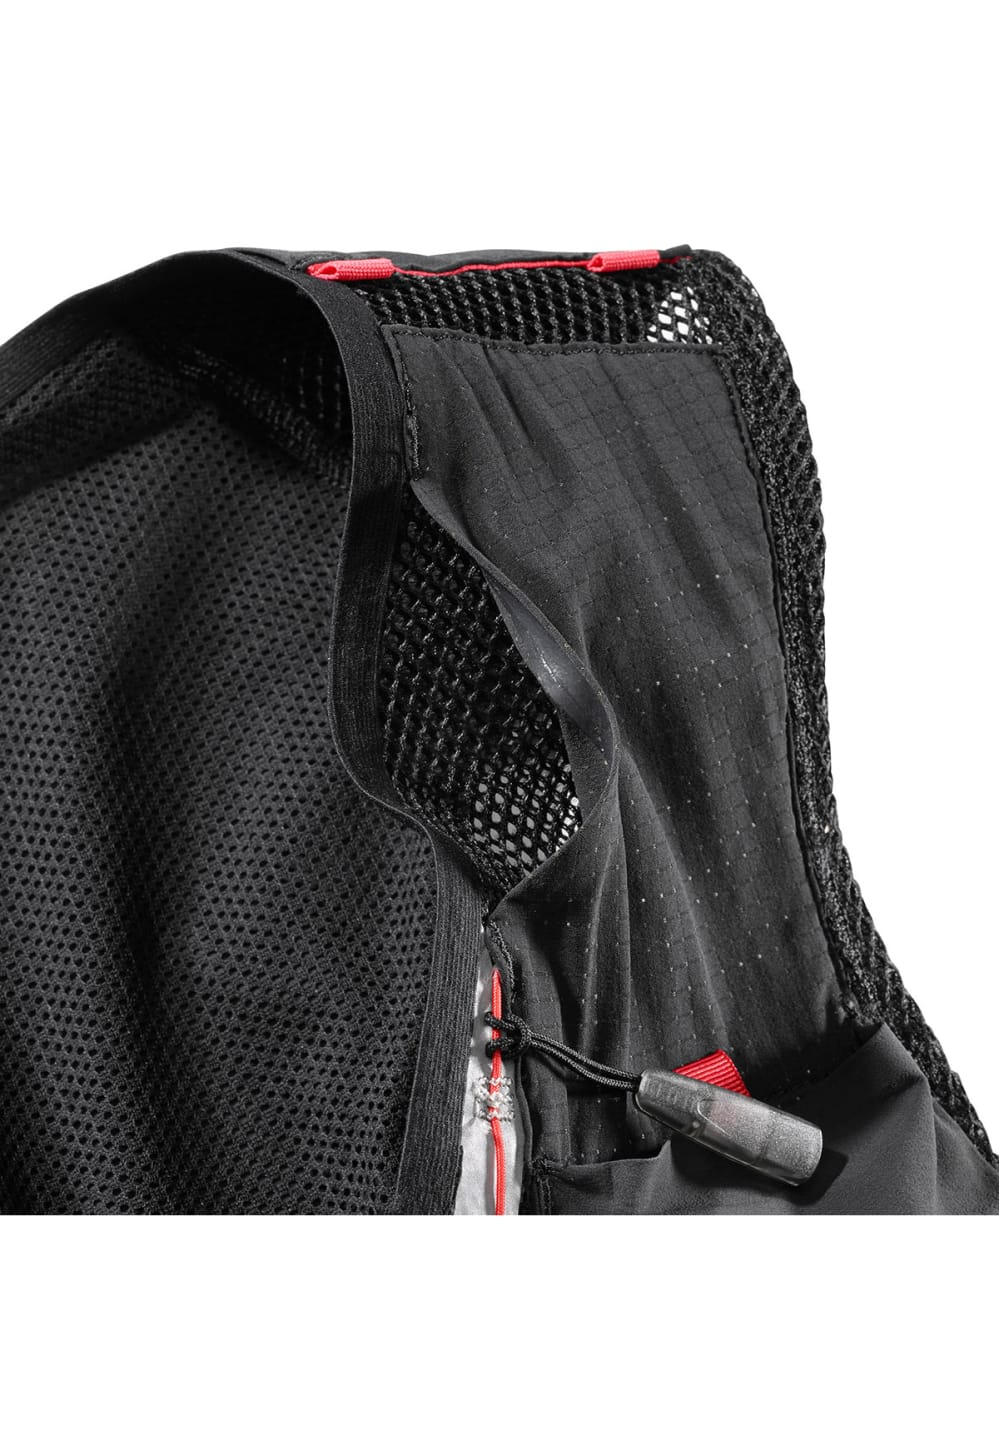 a83b6f5cc1 Next. -60%. This product is currently out of stock. Salomon. Rucksack S-Lab  Sense Ultra 5 Set - Backpacks